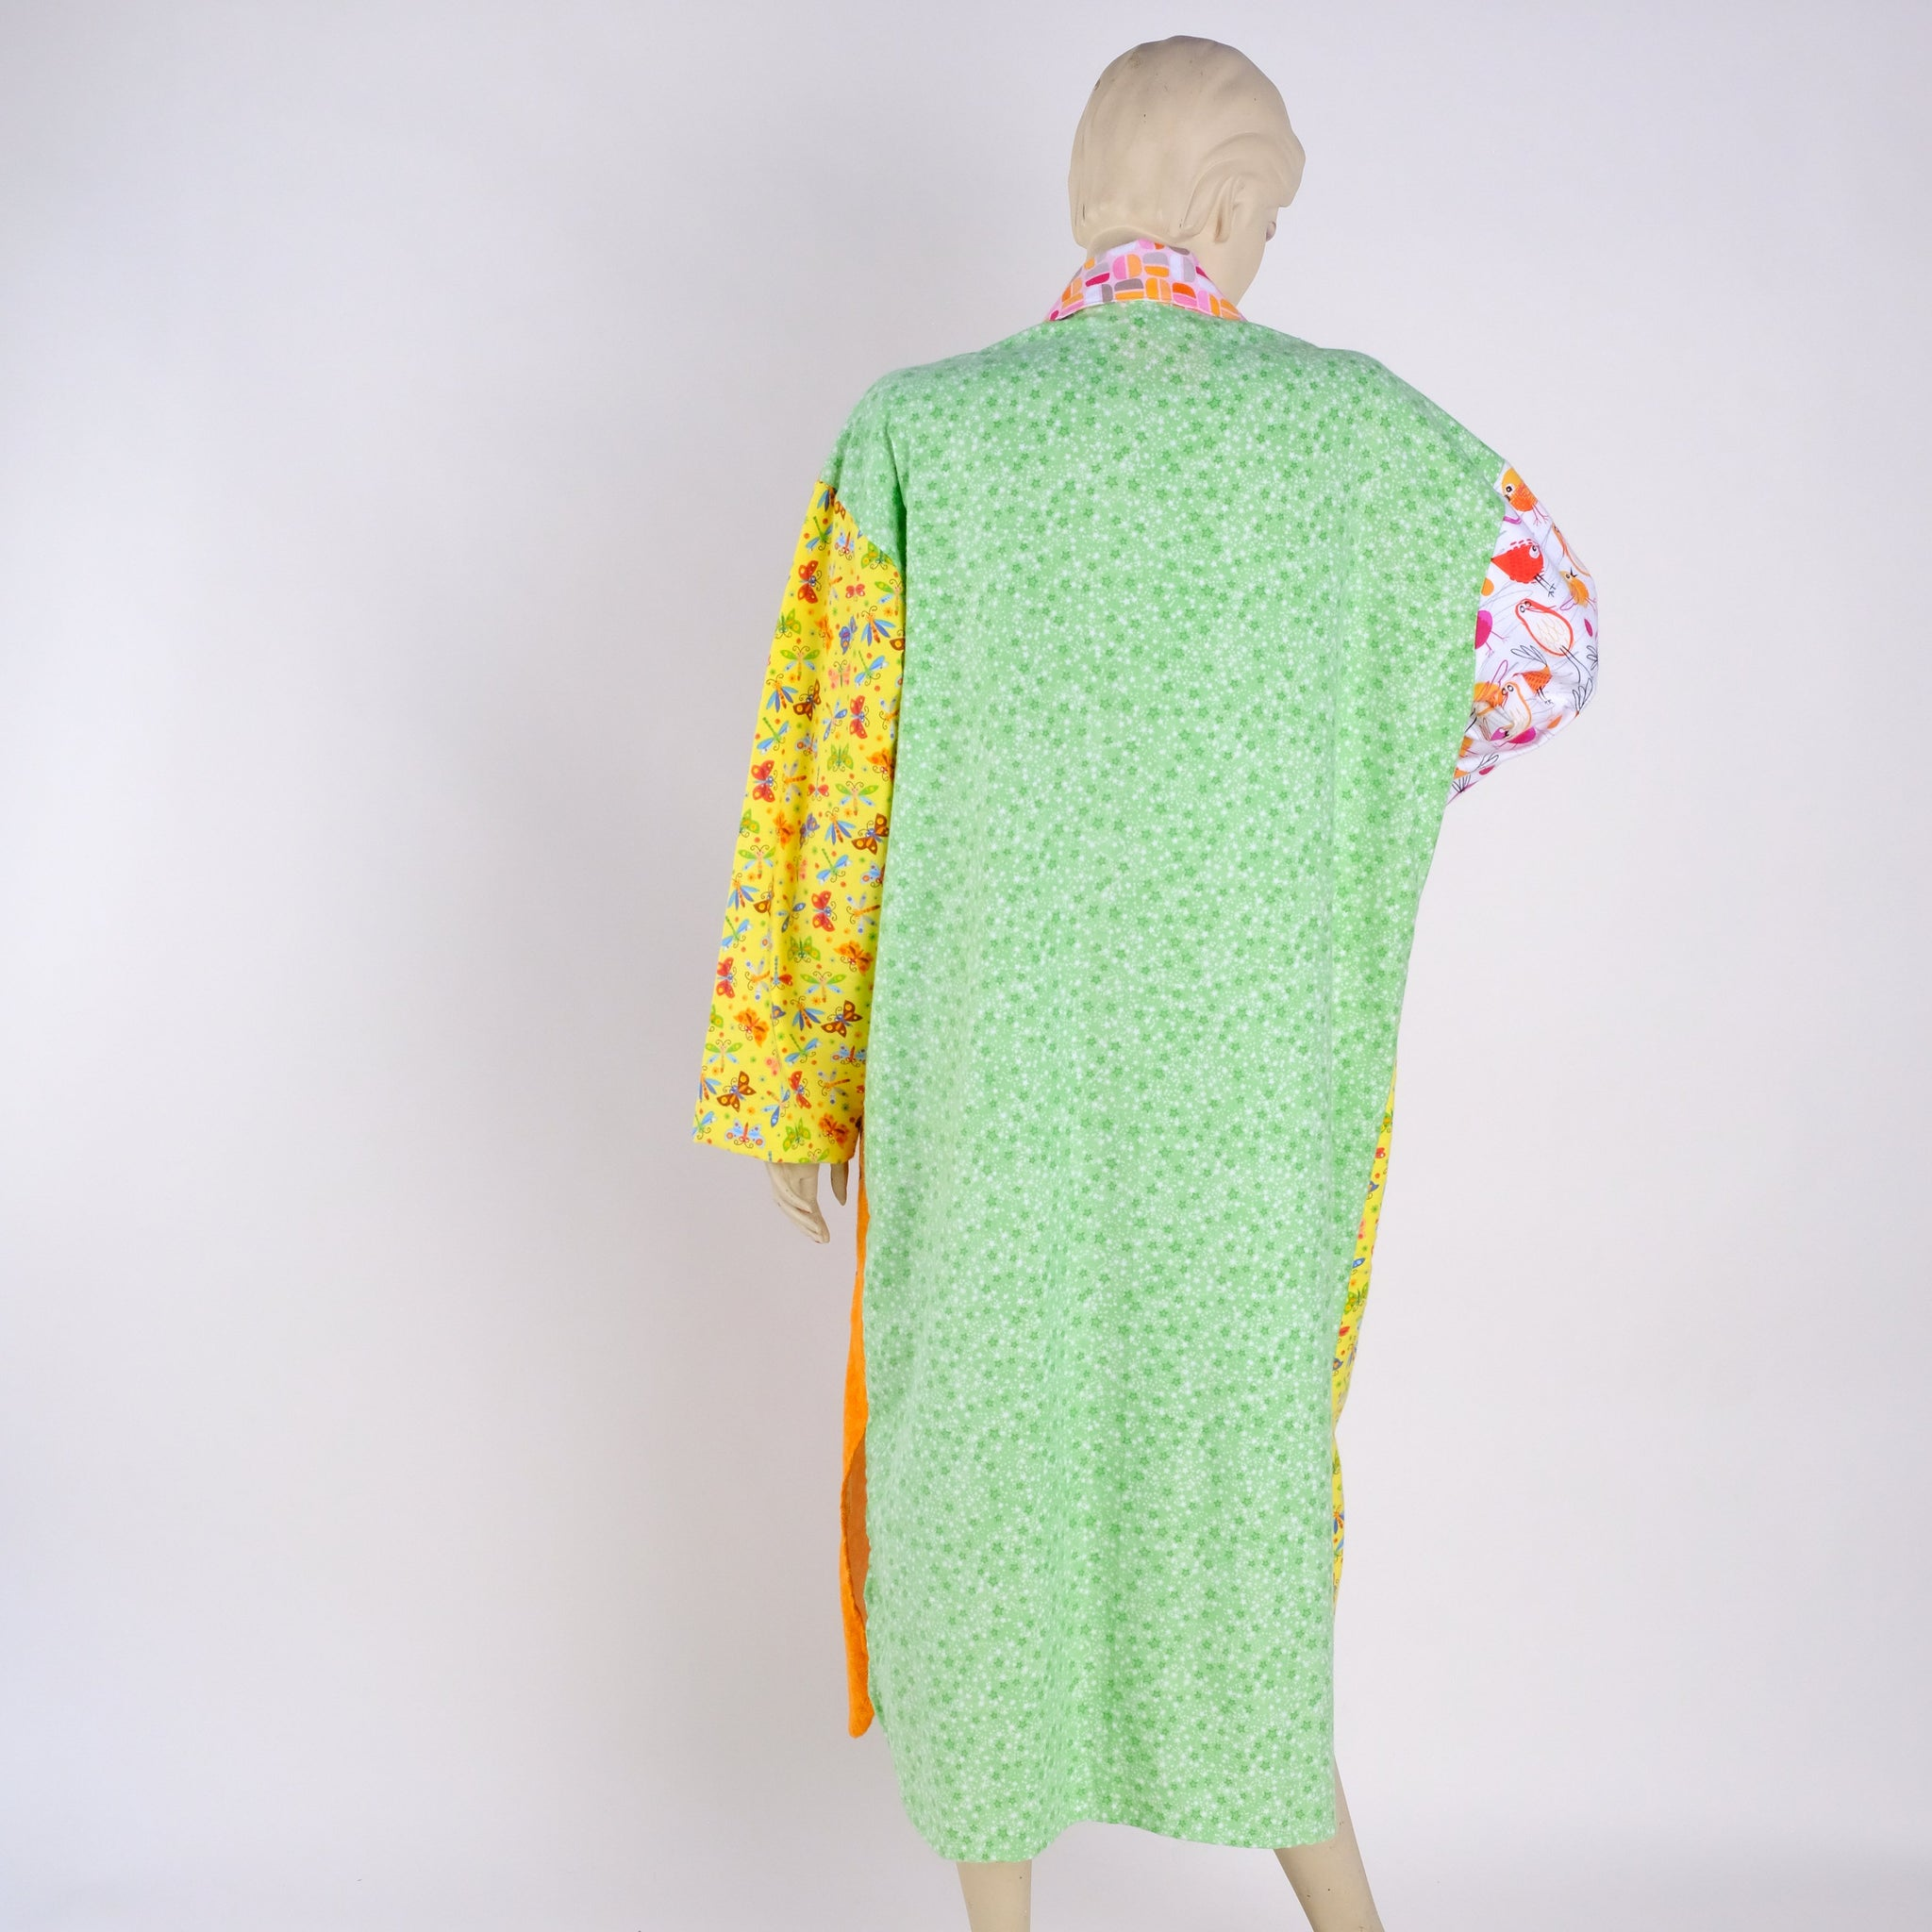 Birdies, Butterflies and Dragonflies Housecoat - Medium - Tessuti Zoo